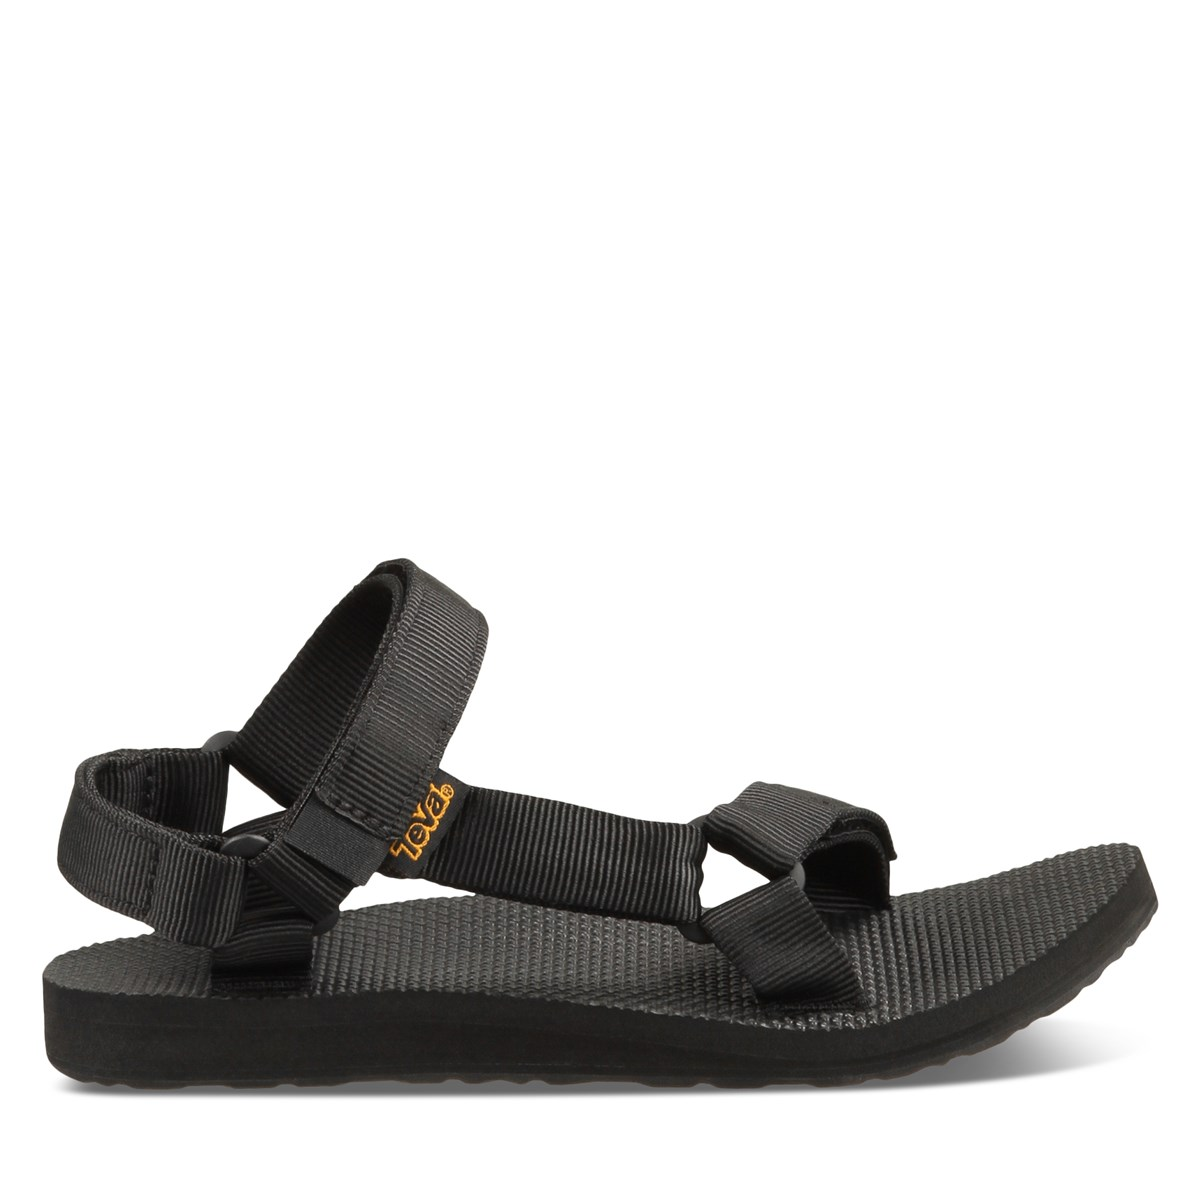 Women's Original Universal Sandal in Black